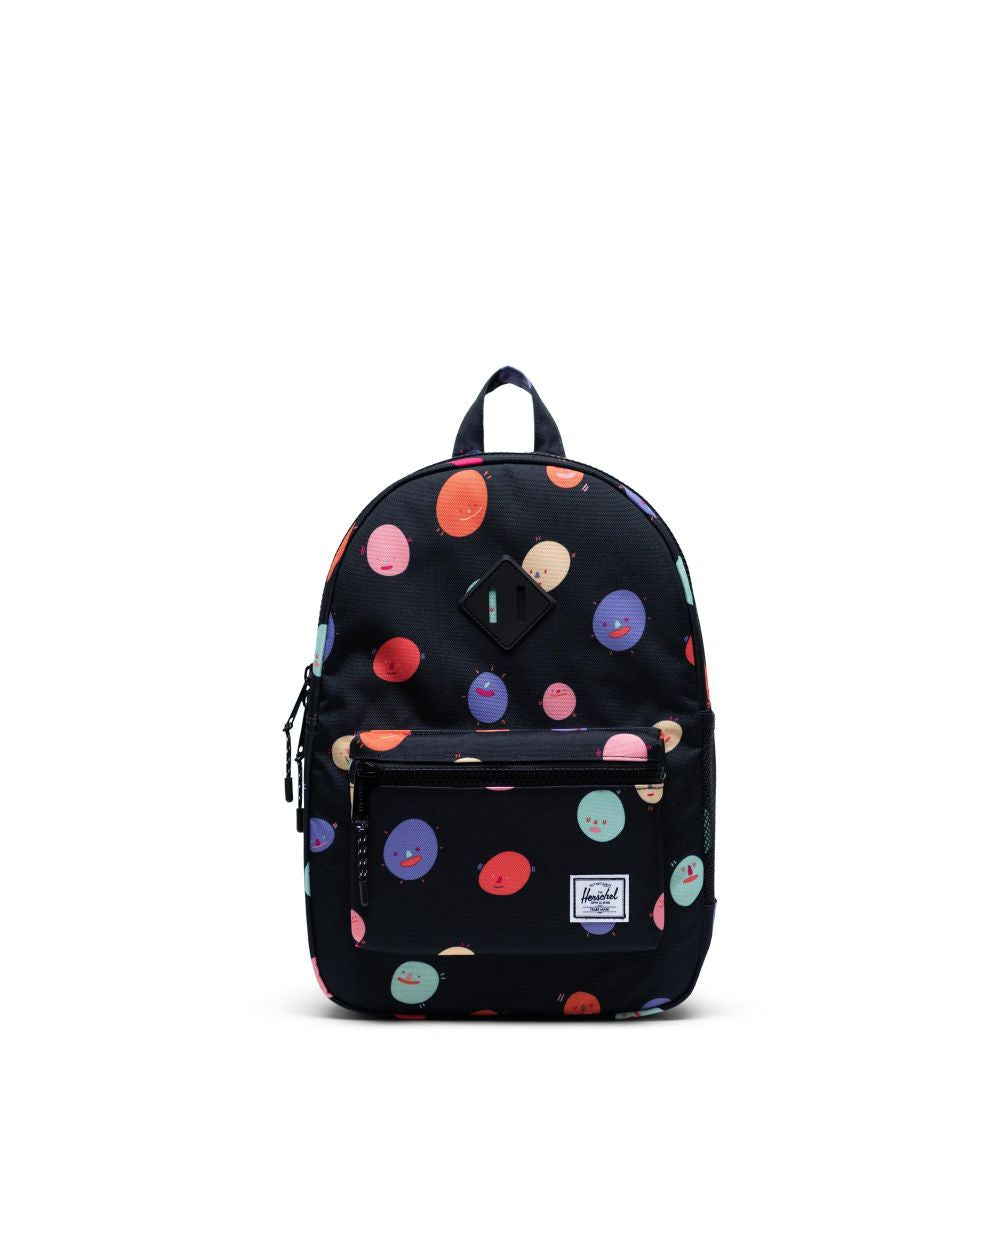 HERSCHEL - HERITAGE YOUTH BACKPACK IN POLKA PEOPLE